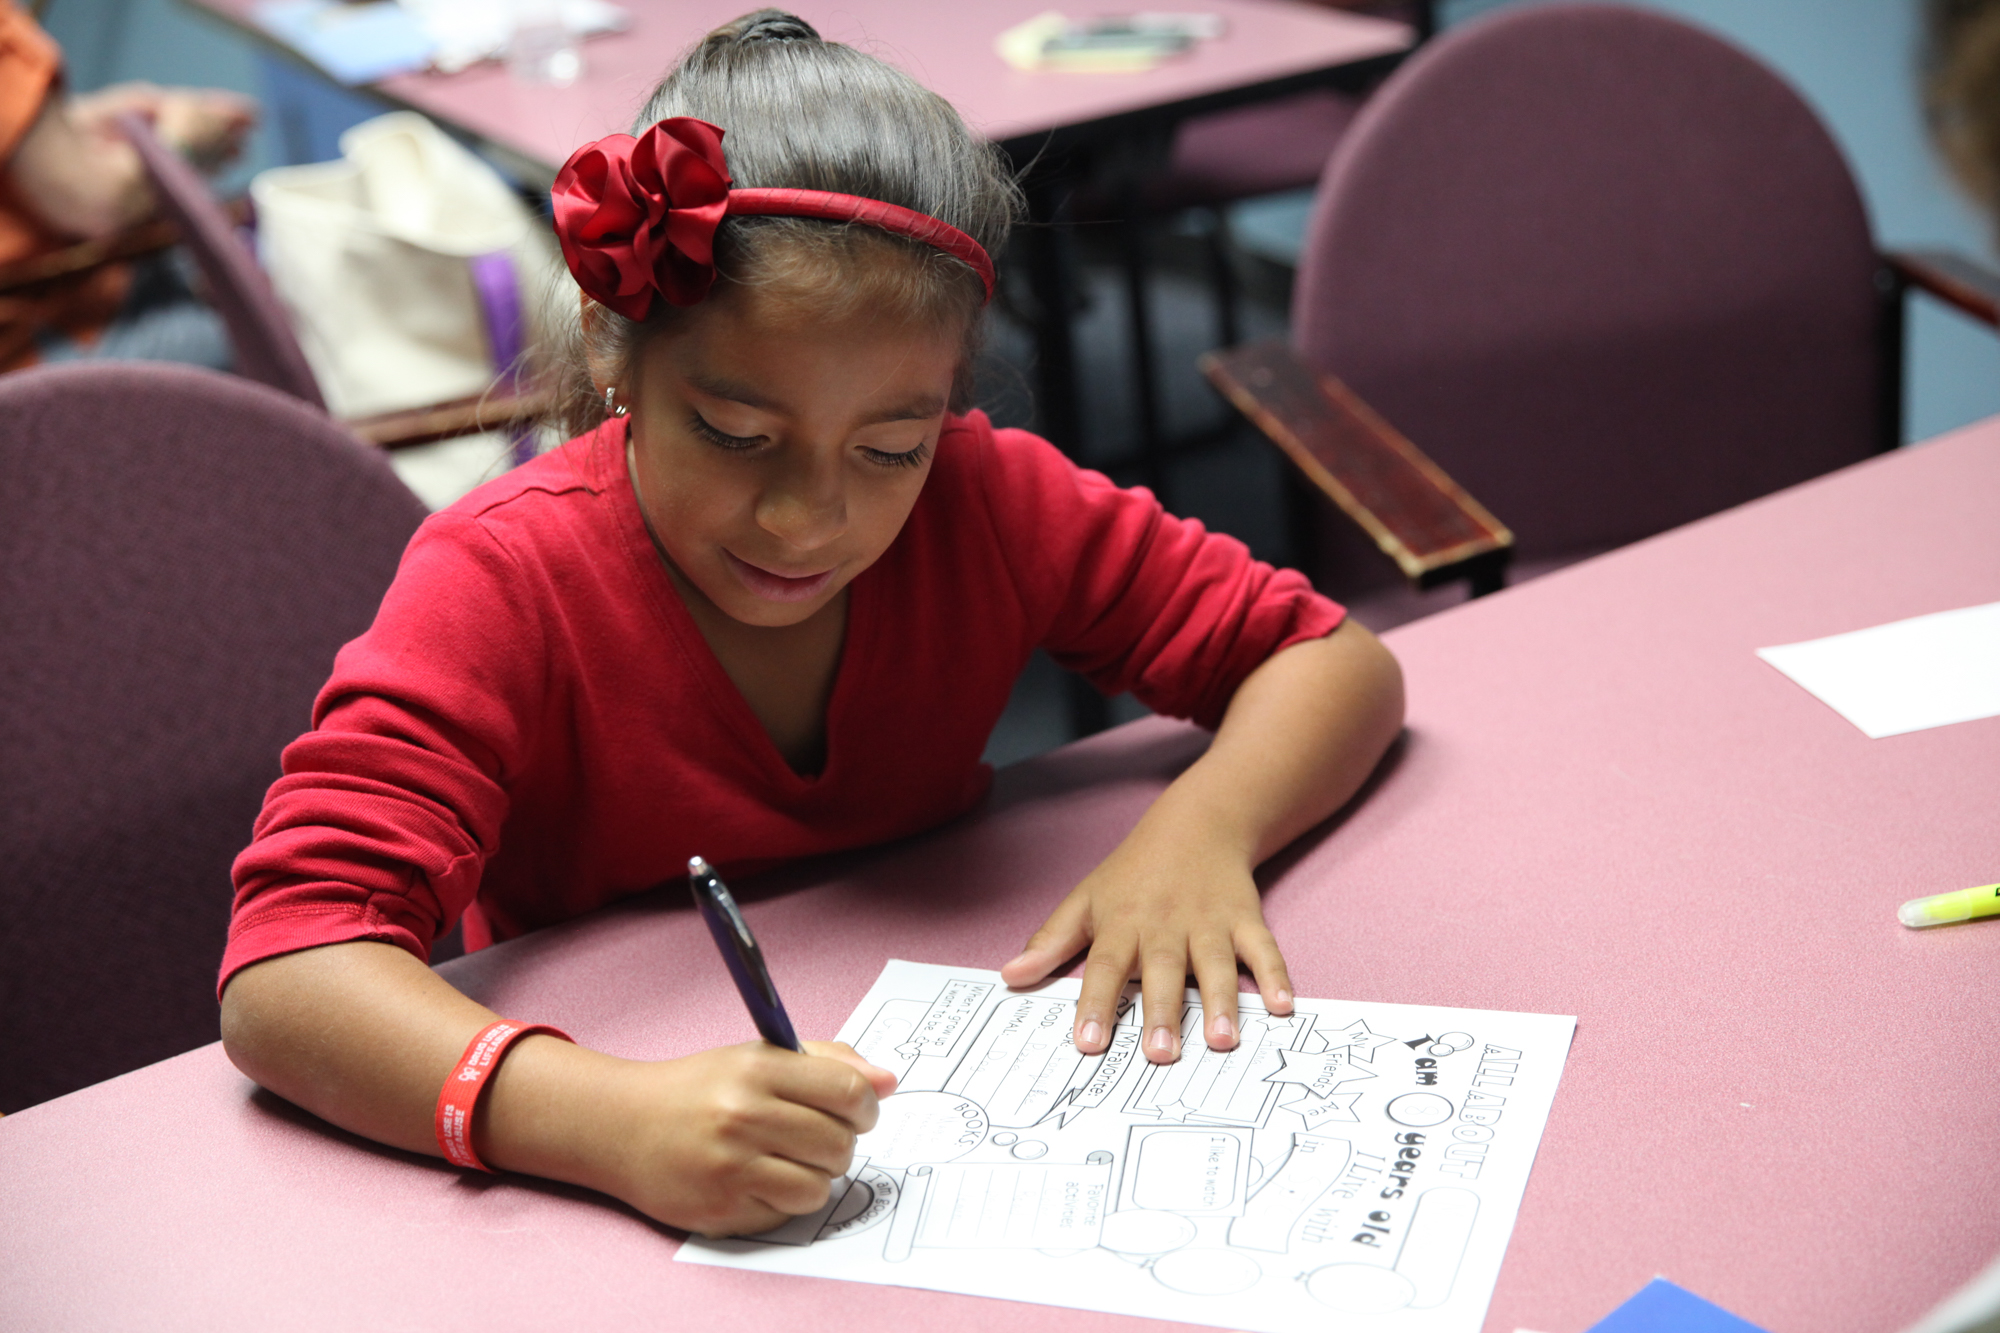 Miranda Rosas fills out an introductory worksheet during her first reading session at the Boys & Girls Clubs of Capistrano Valley. Photo: Allison Jarrell